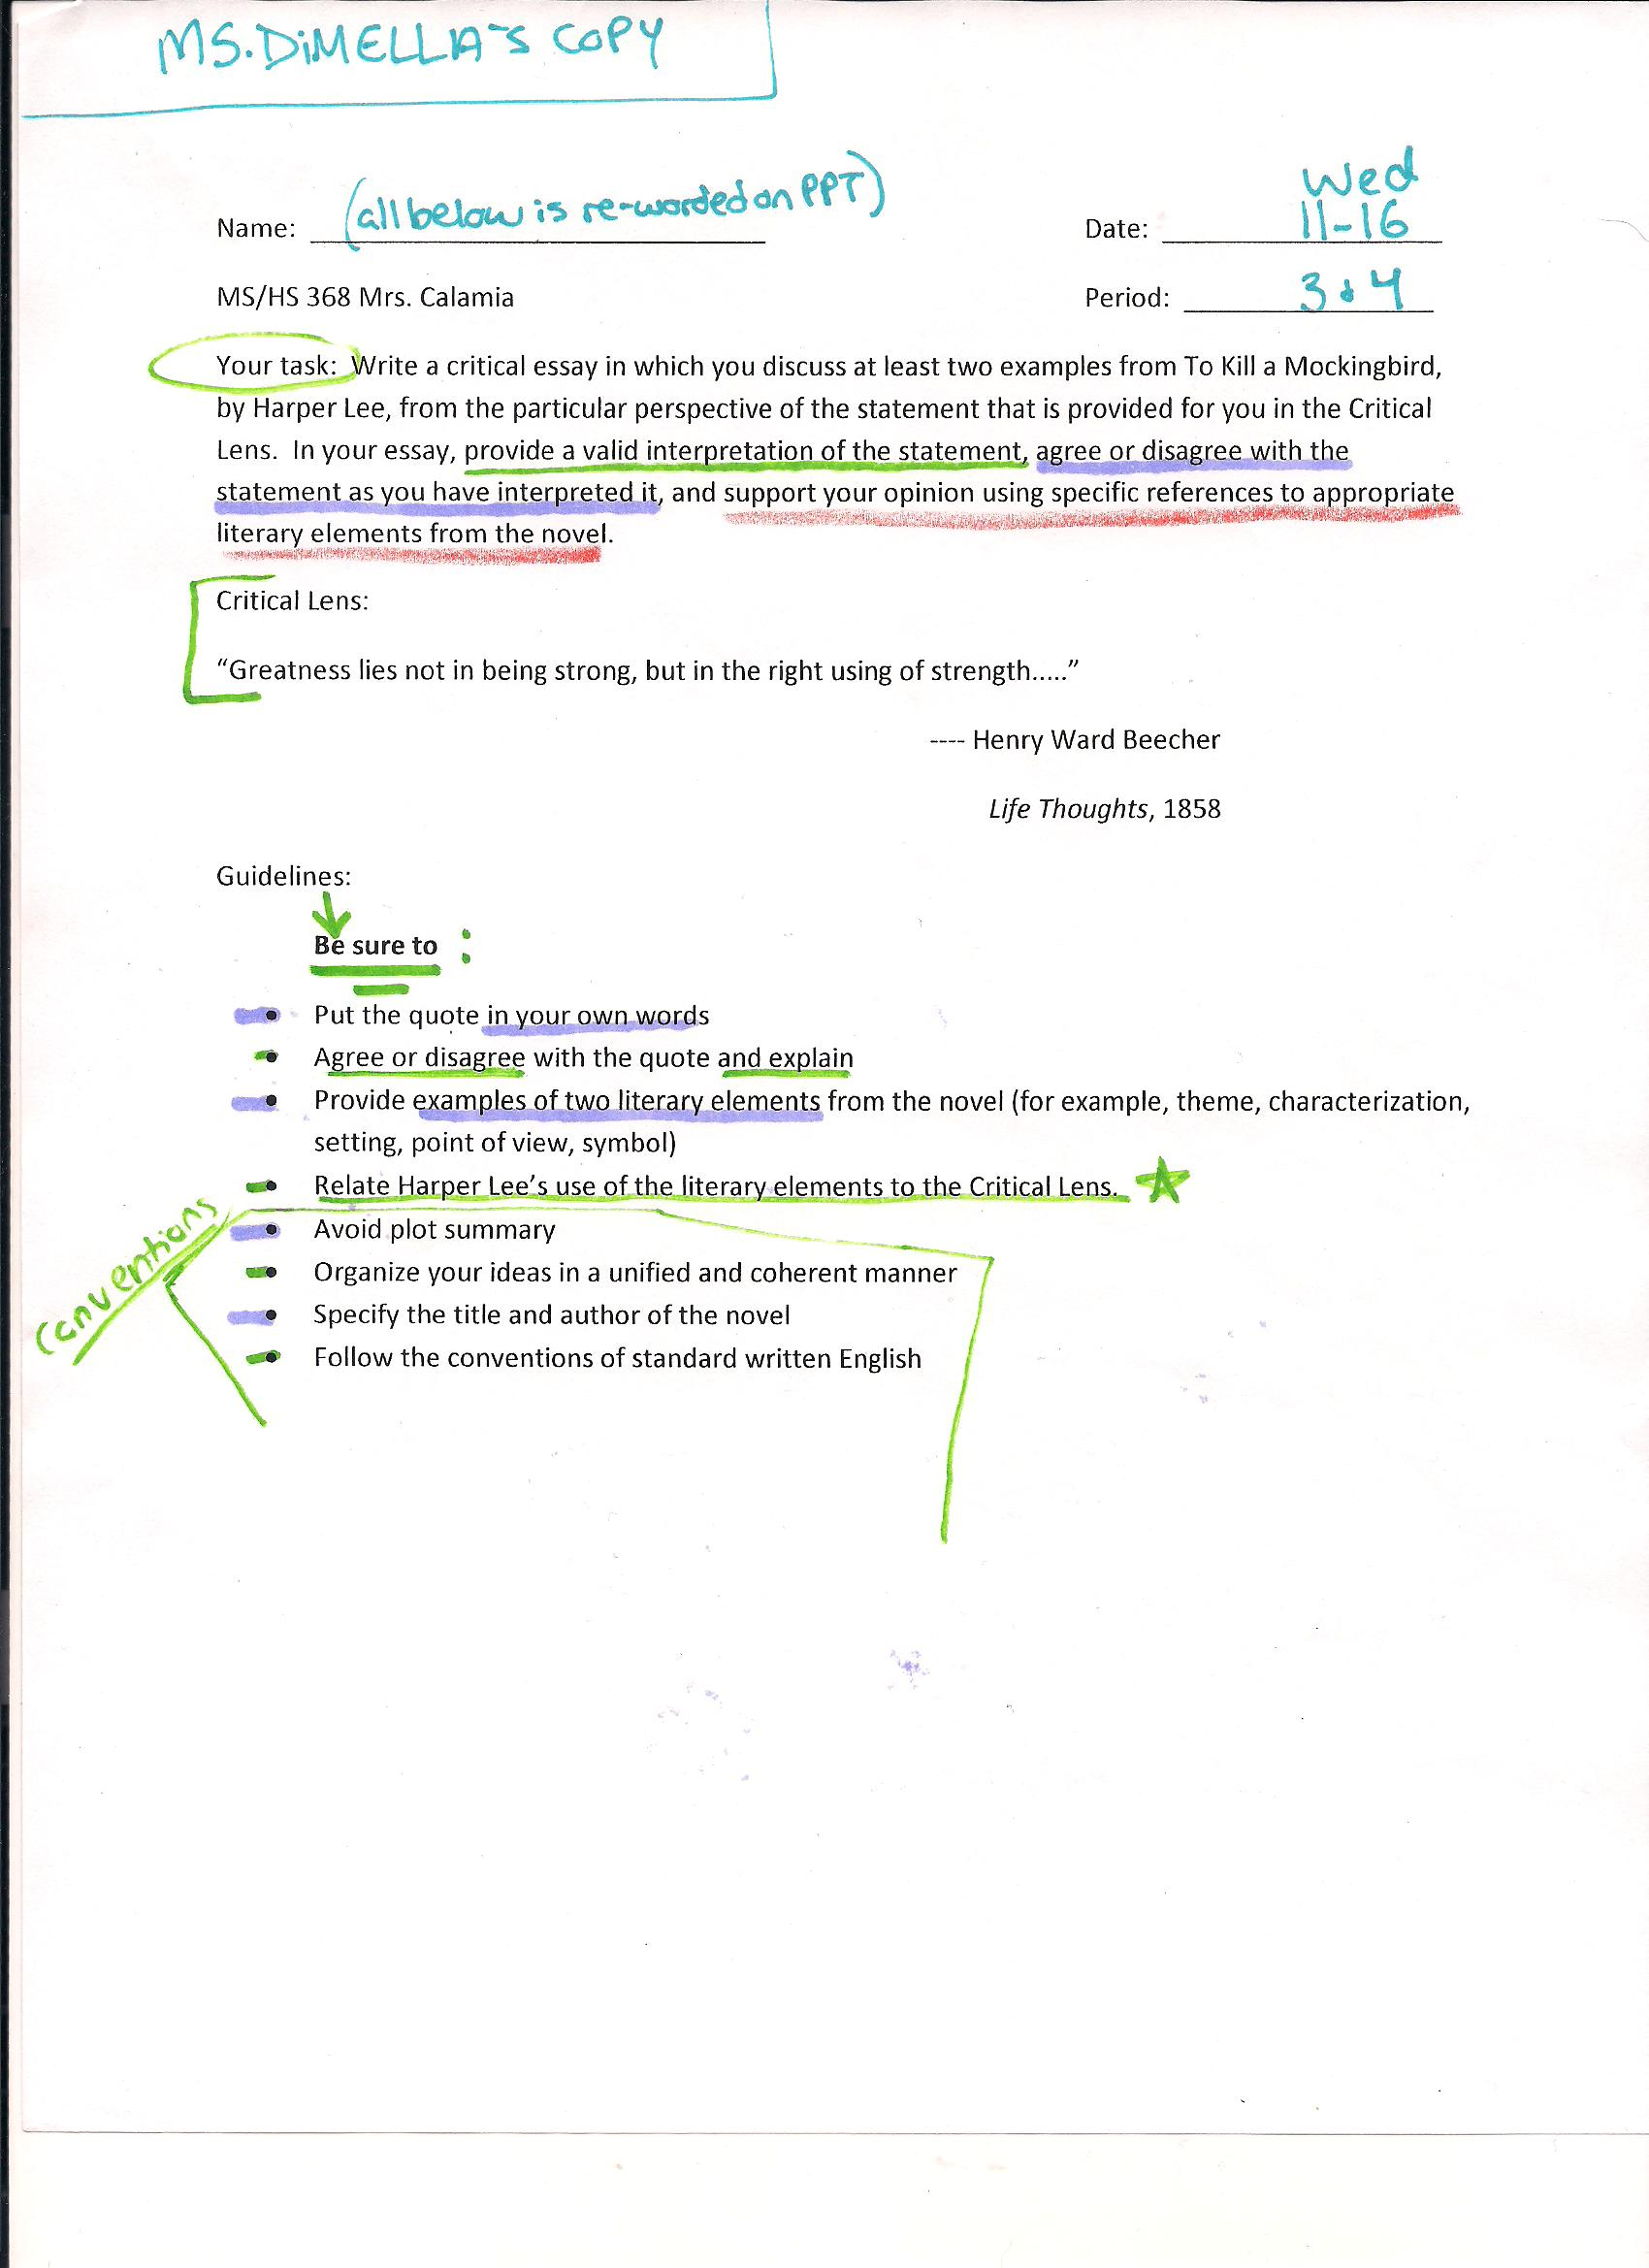 022 Critical Lens Essay  Hs Planning Midterm Best Sample Template Example English RegentsFull